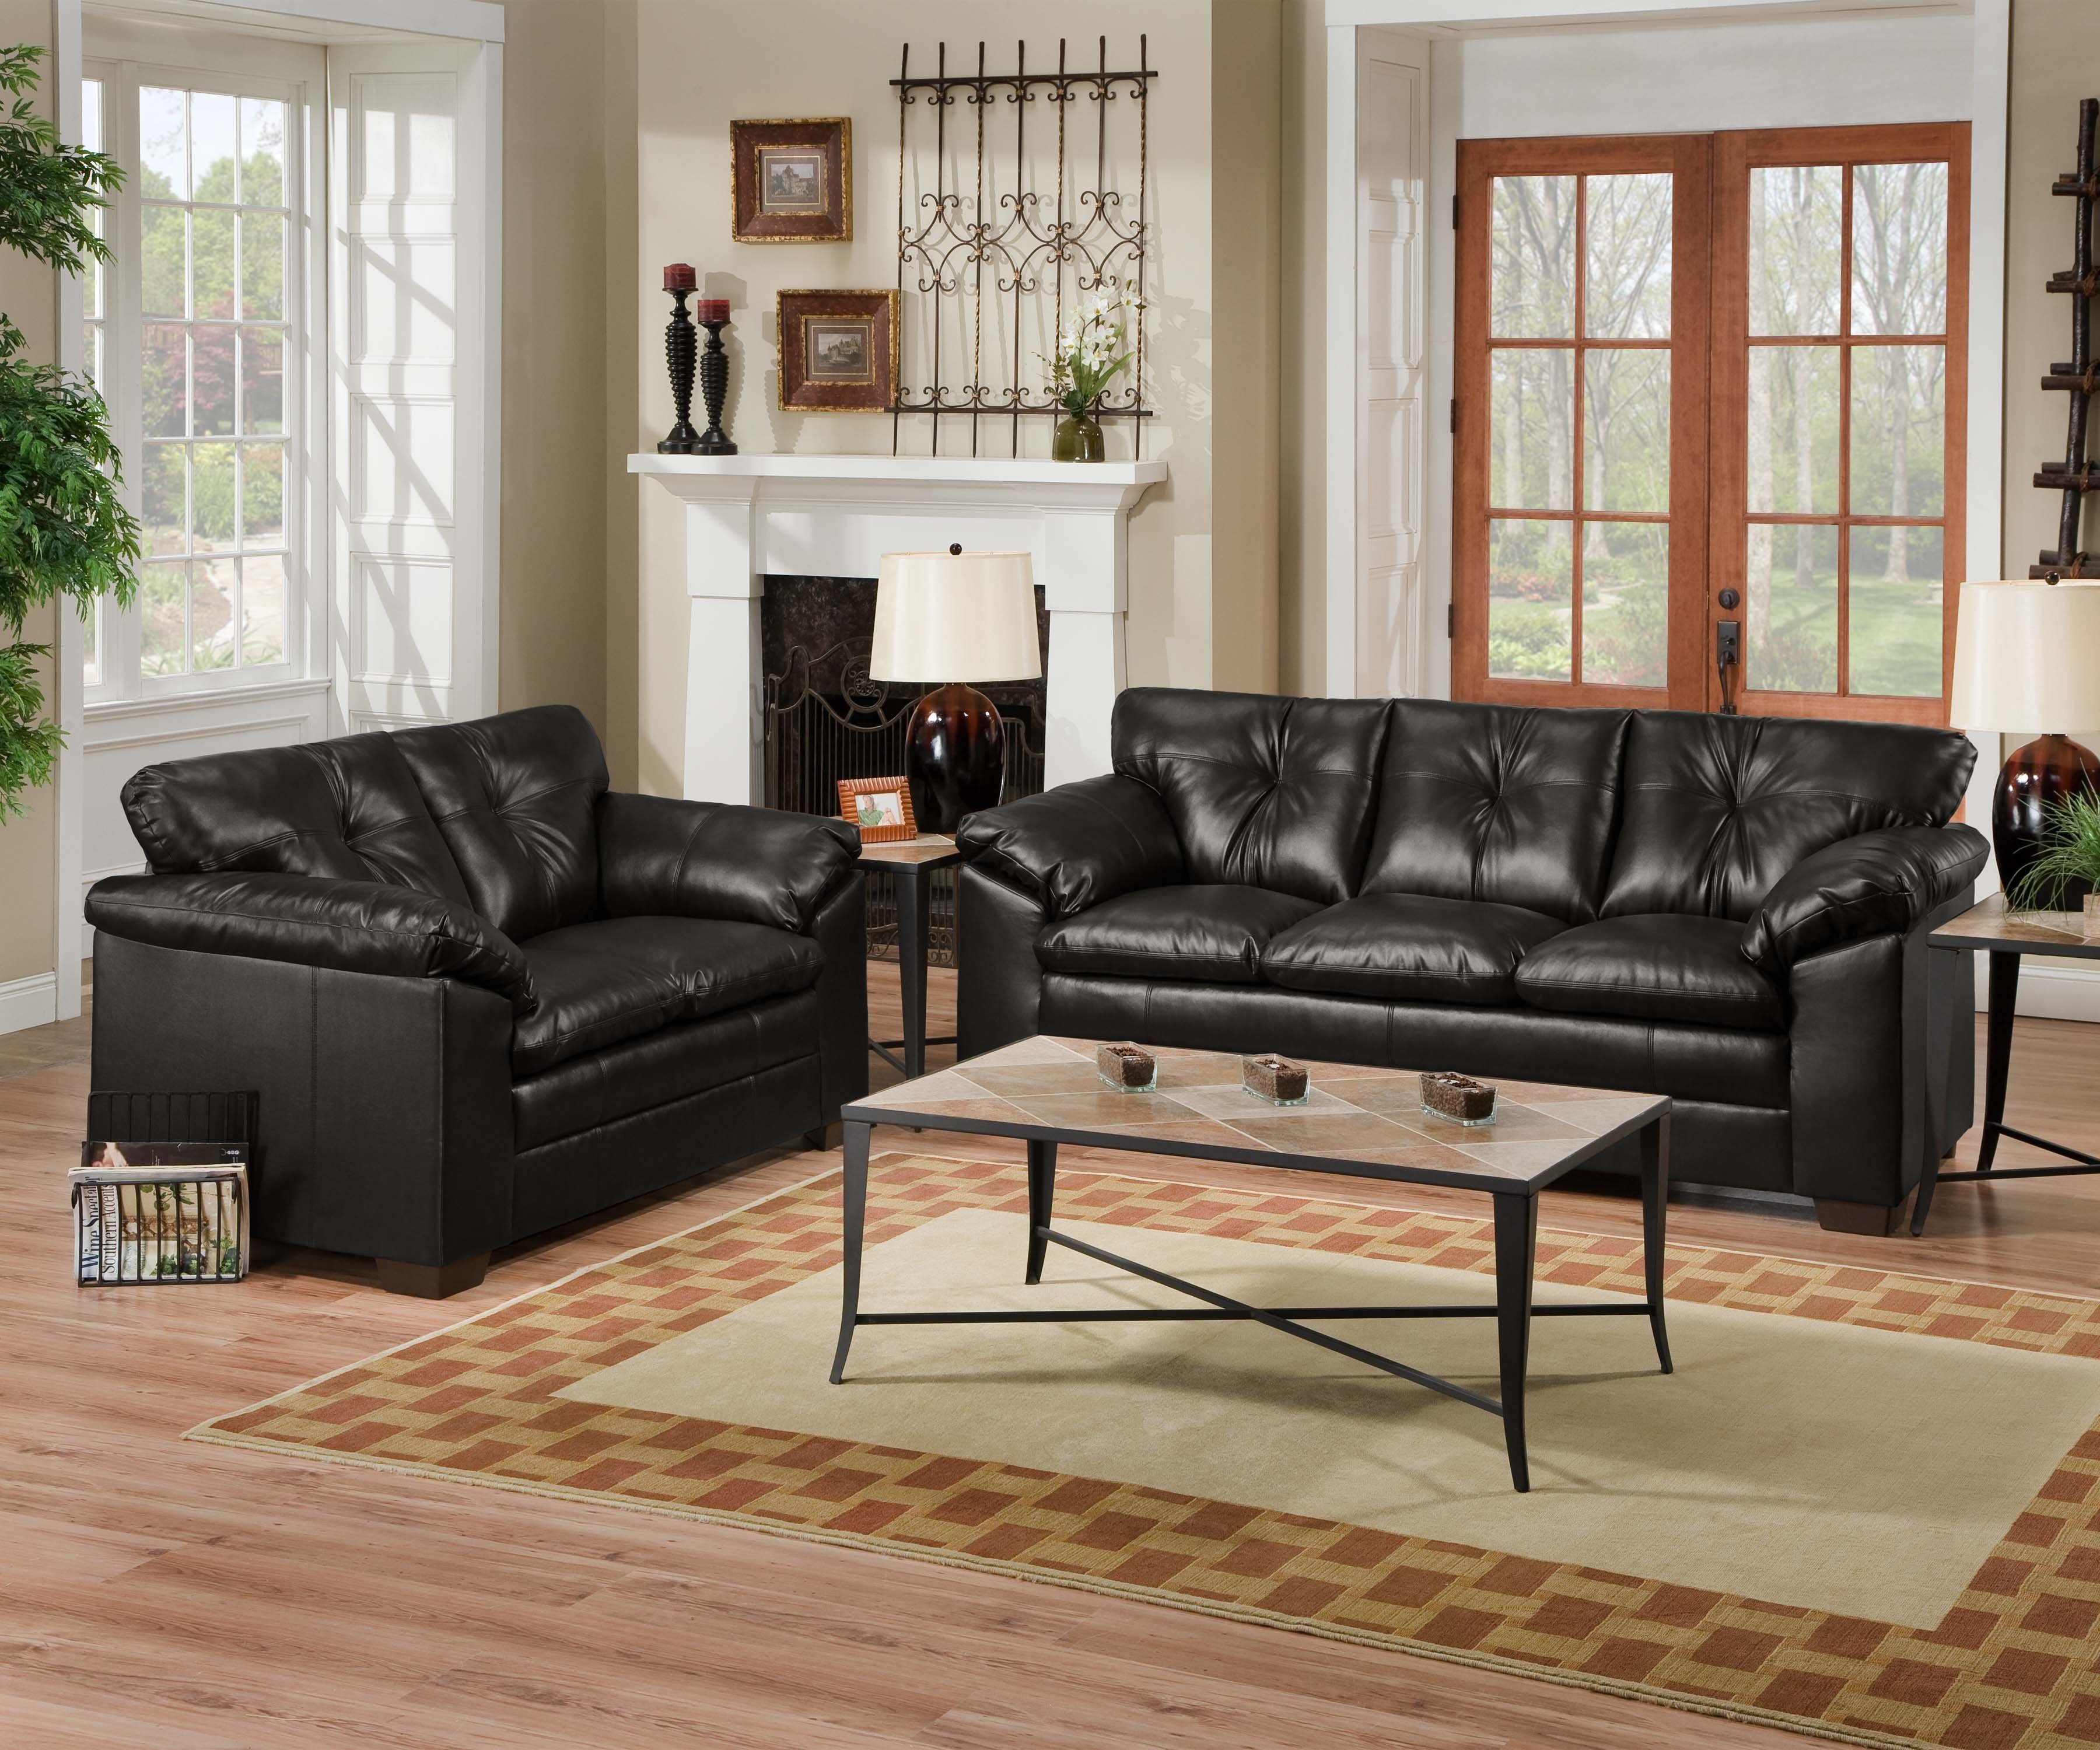 Save 30 60 Off On Name Brand Leather Living Room Sets